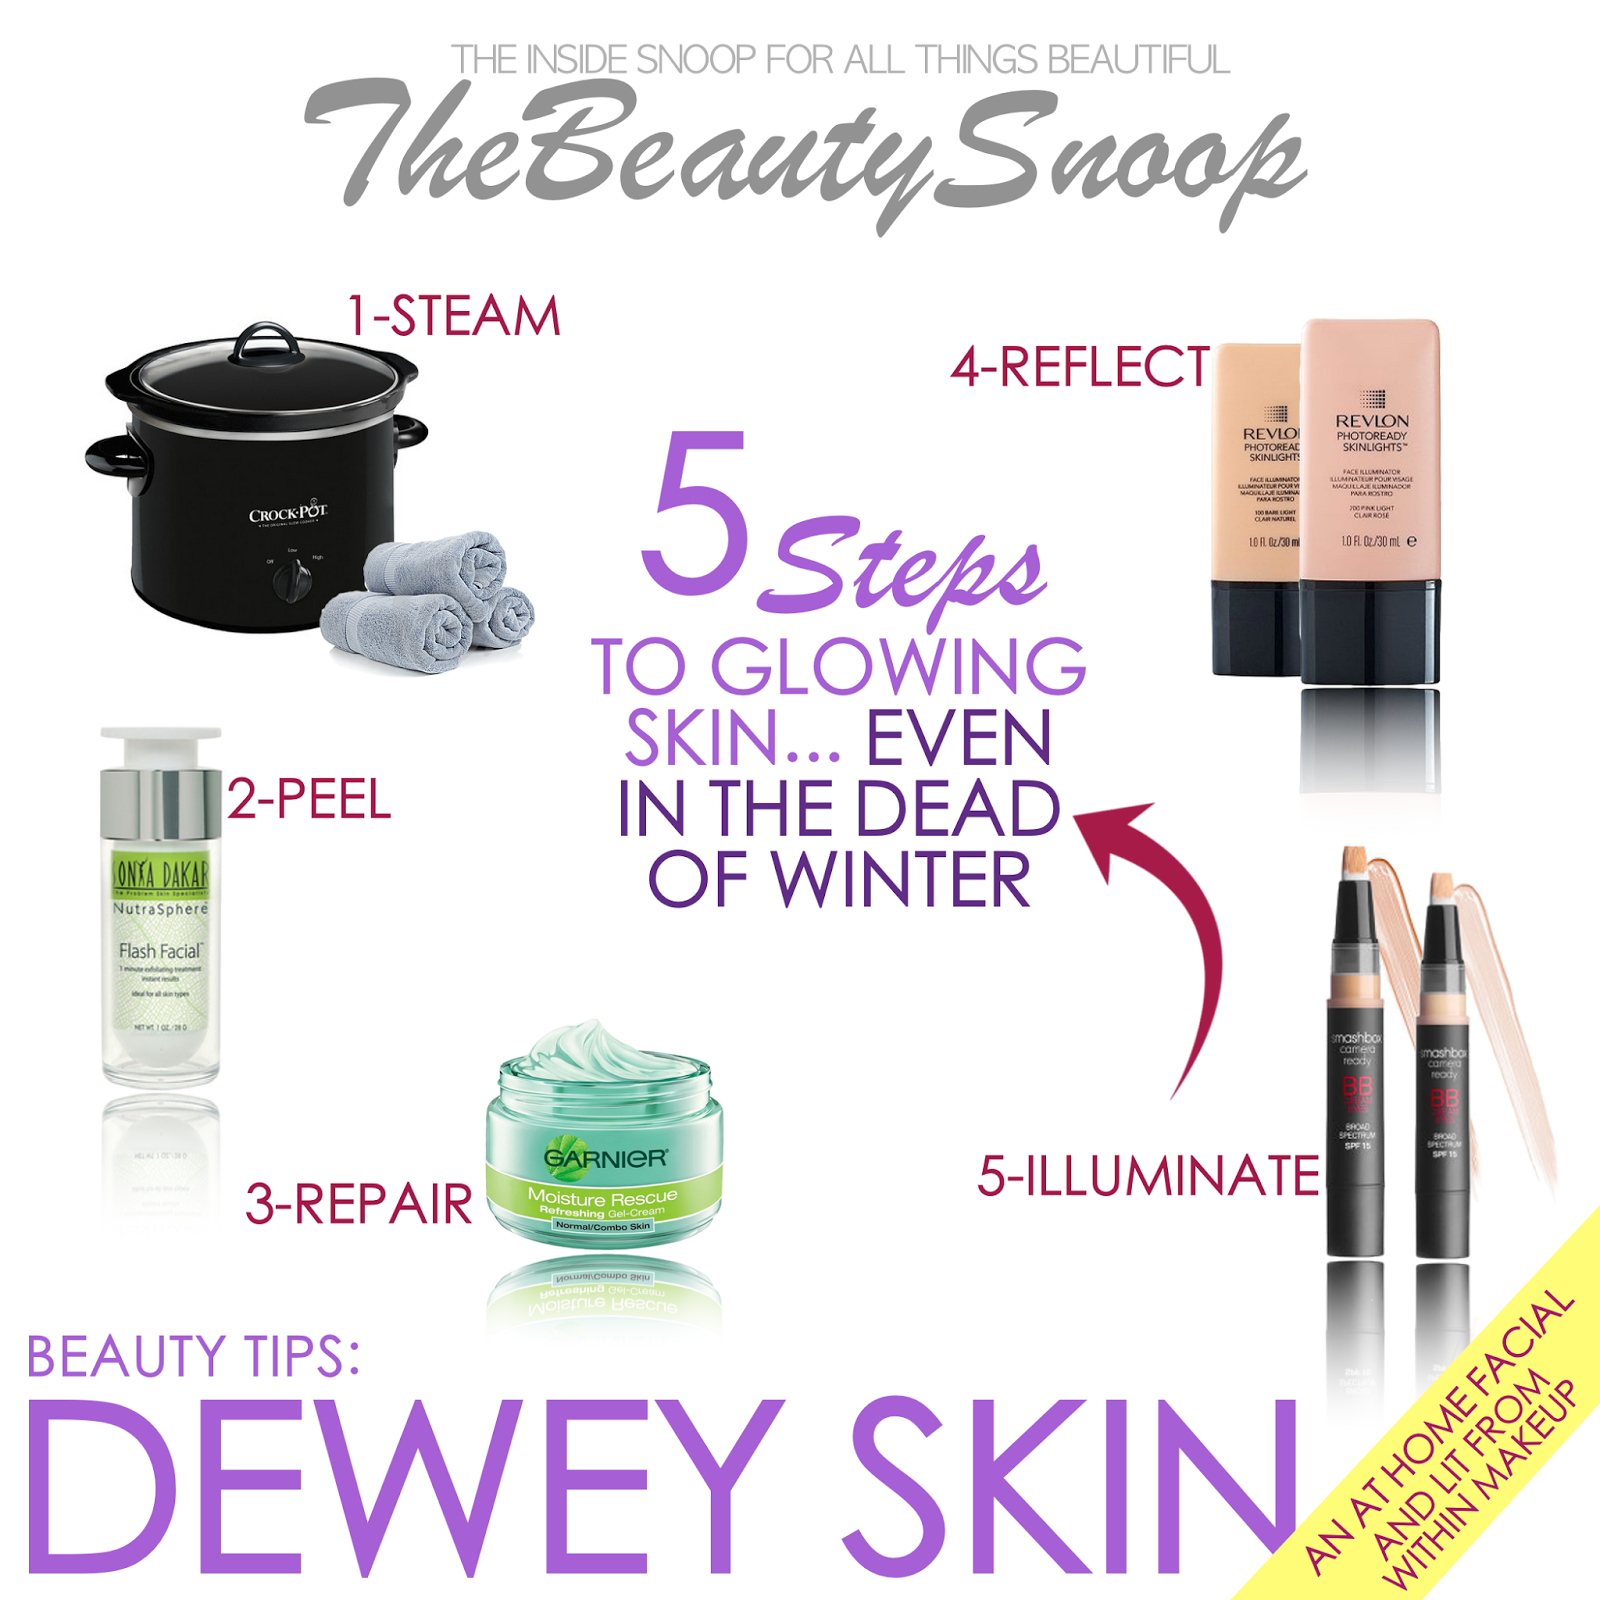 Skincare and makeup products to achieve a dewey complexion. At home facial routine, DIY facial, skincare, glowing skin, dewey skincare, makeup that glows